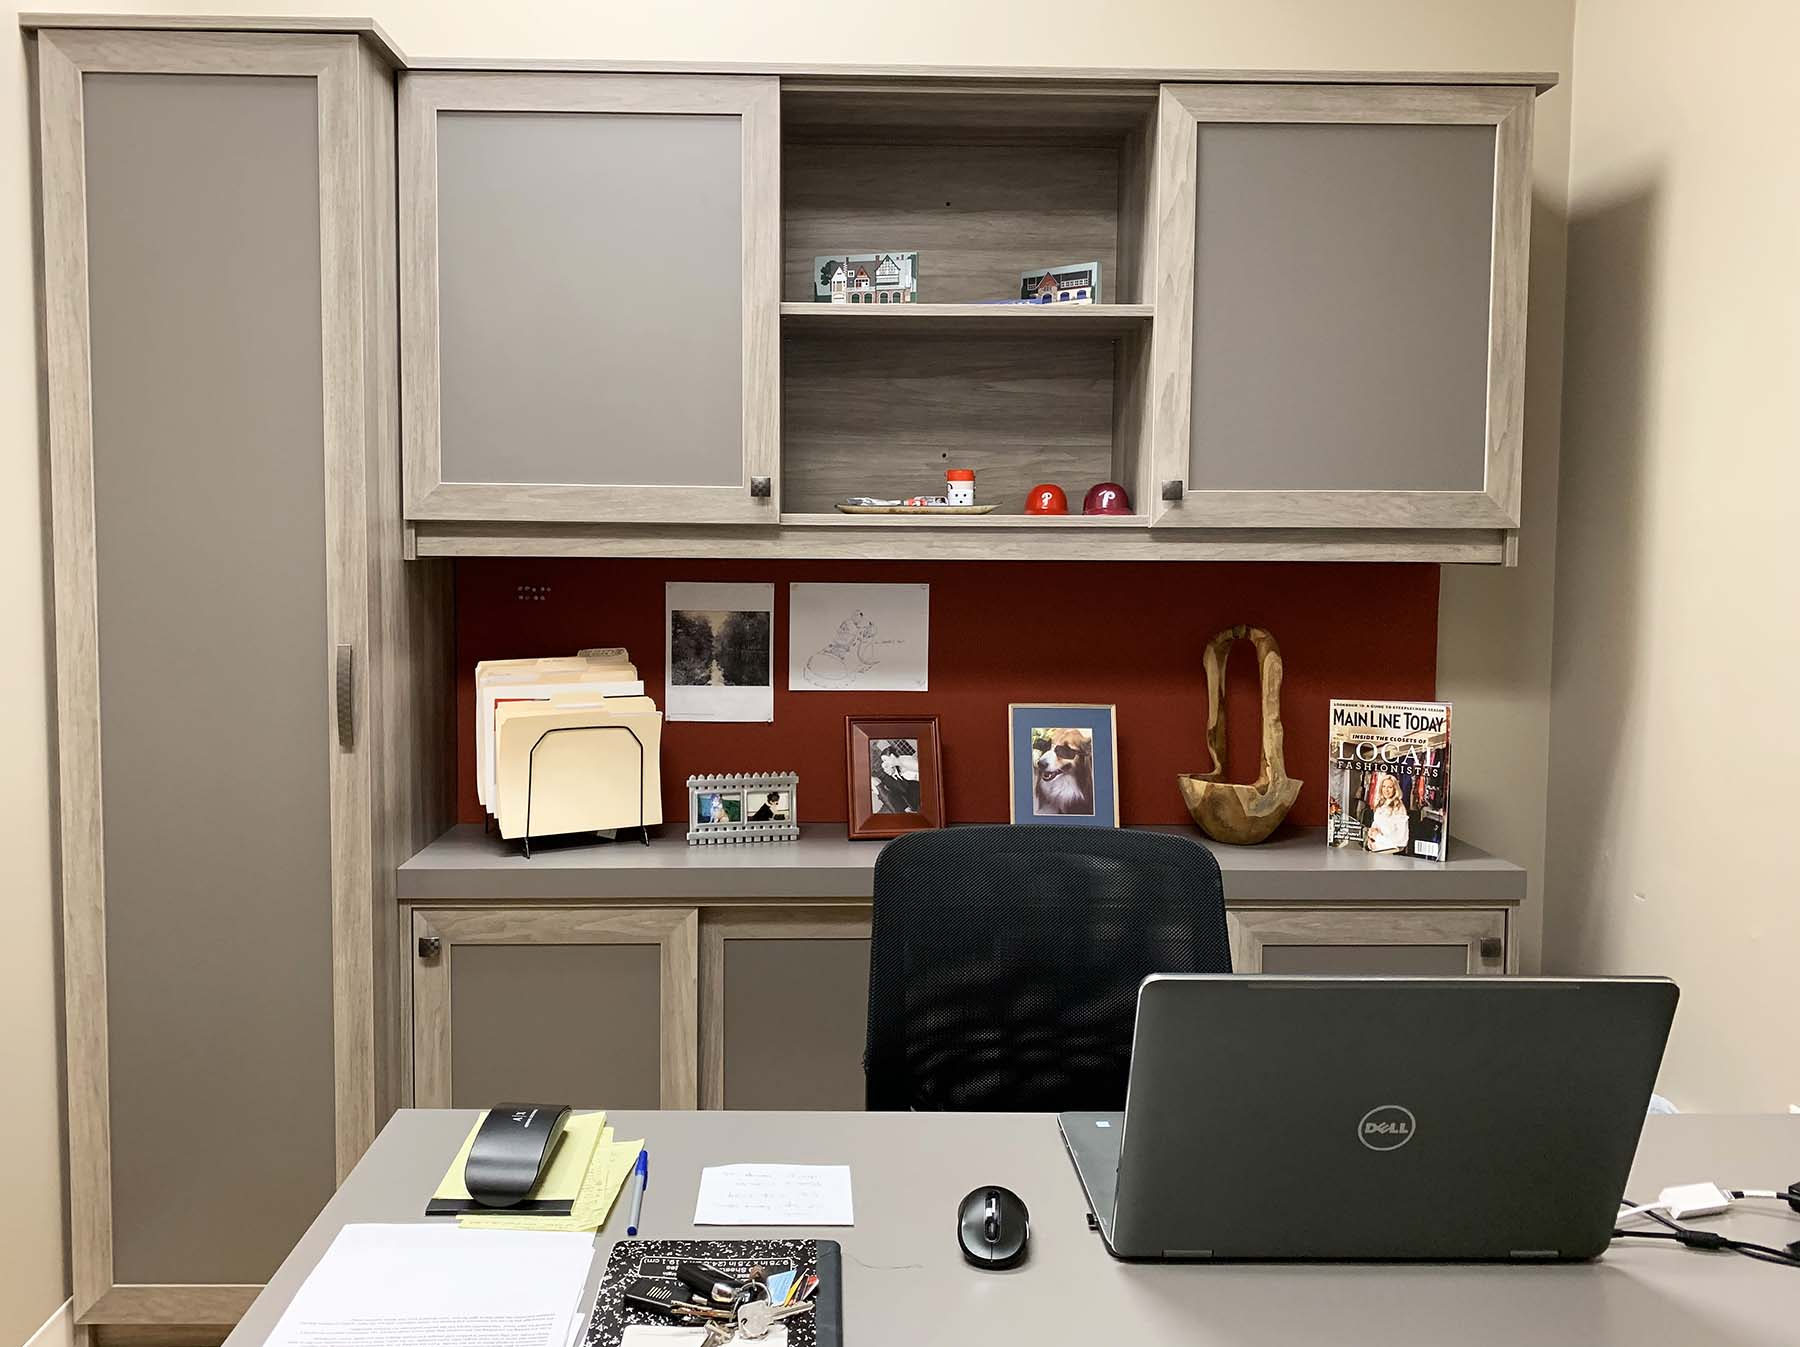 Decluttered home office with laptop on desk and matching cabinets